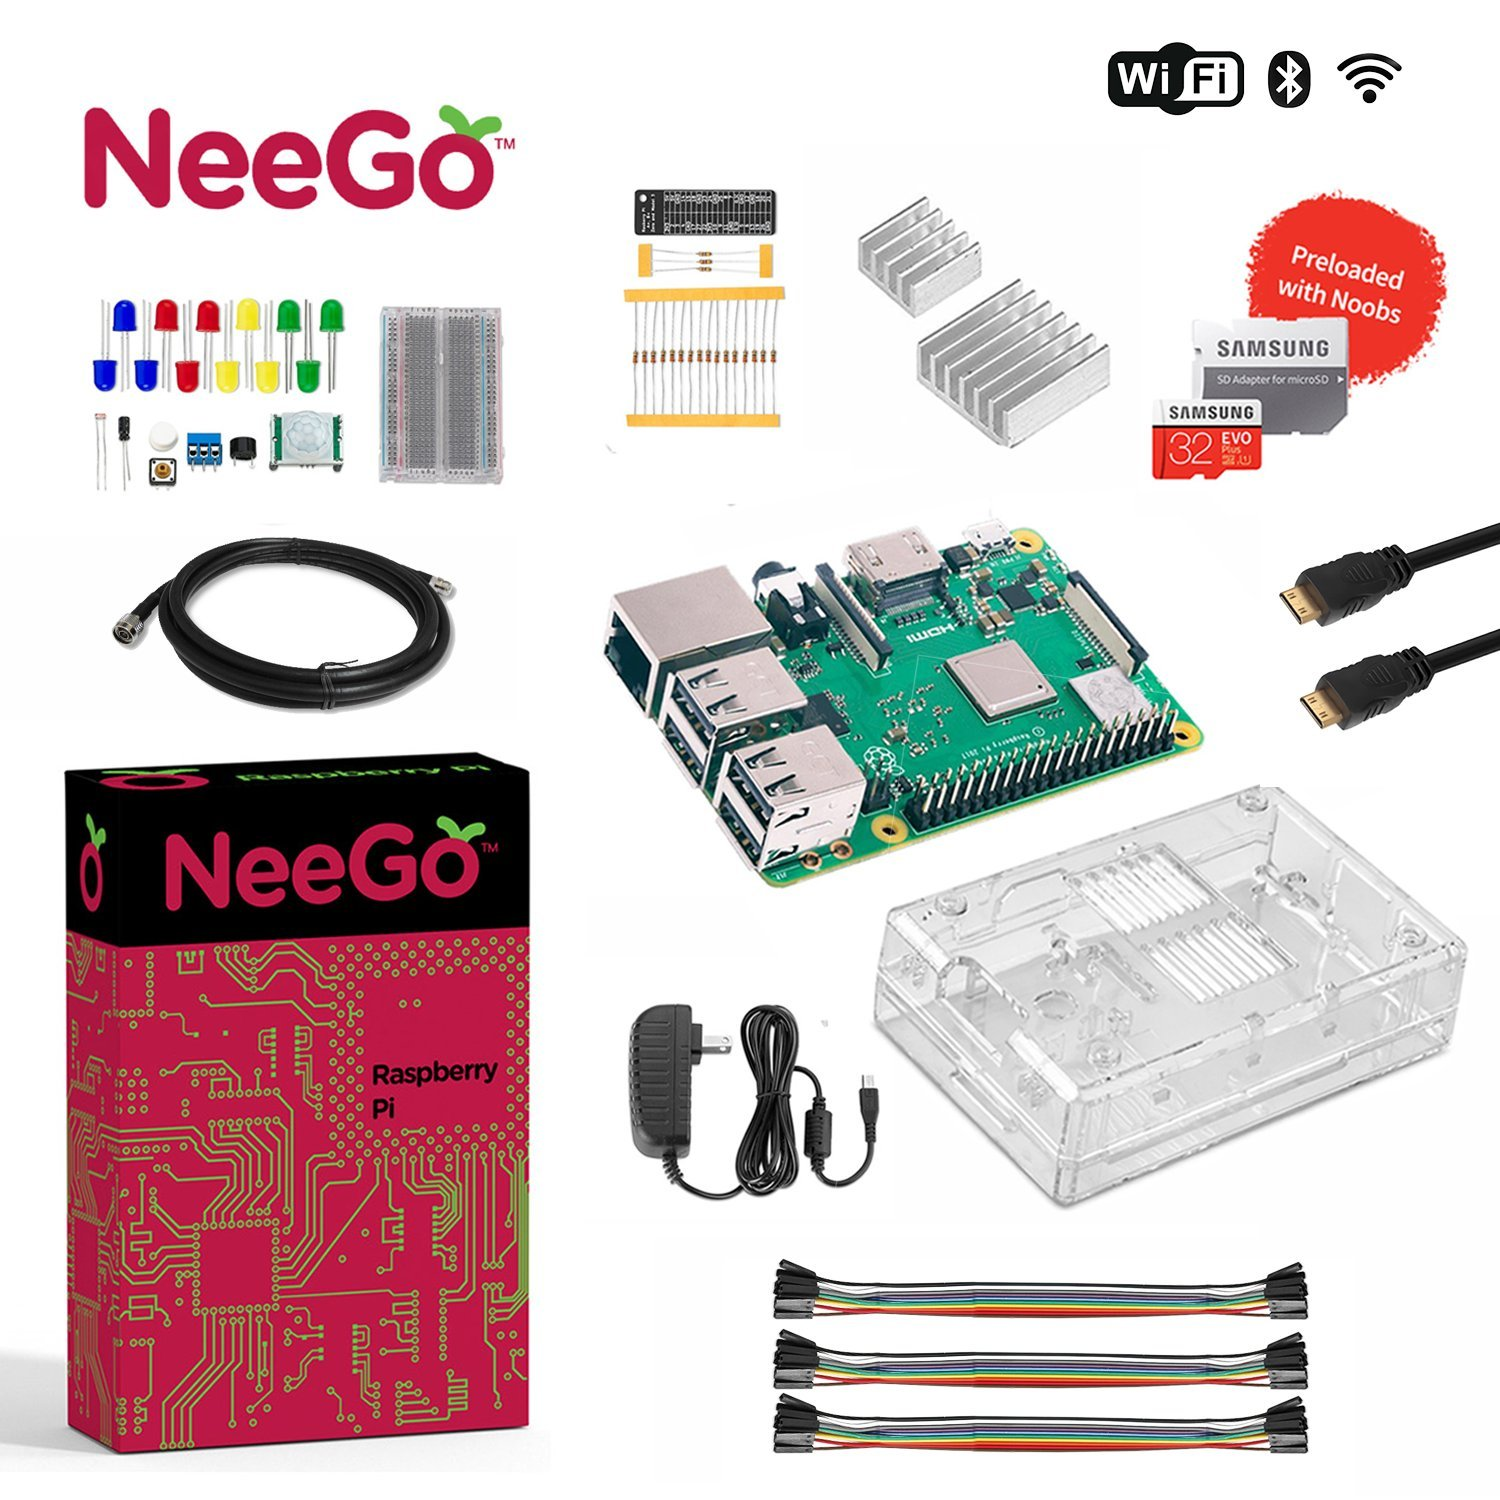 Neego Raspberry Pi 3 B+ (B Plus) Ultimate Education Starter Kit, B+ Motherboard, 32-GB Micro SD Card Preloaded With Noobs, 10-Piece Education Kit, Heatsinks, Clear Case, 2.5A Power Supply, HDMI Cable, by NeeGo